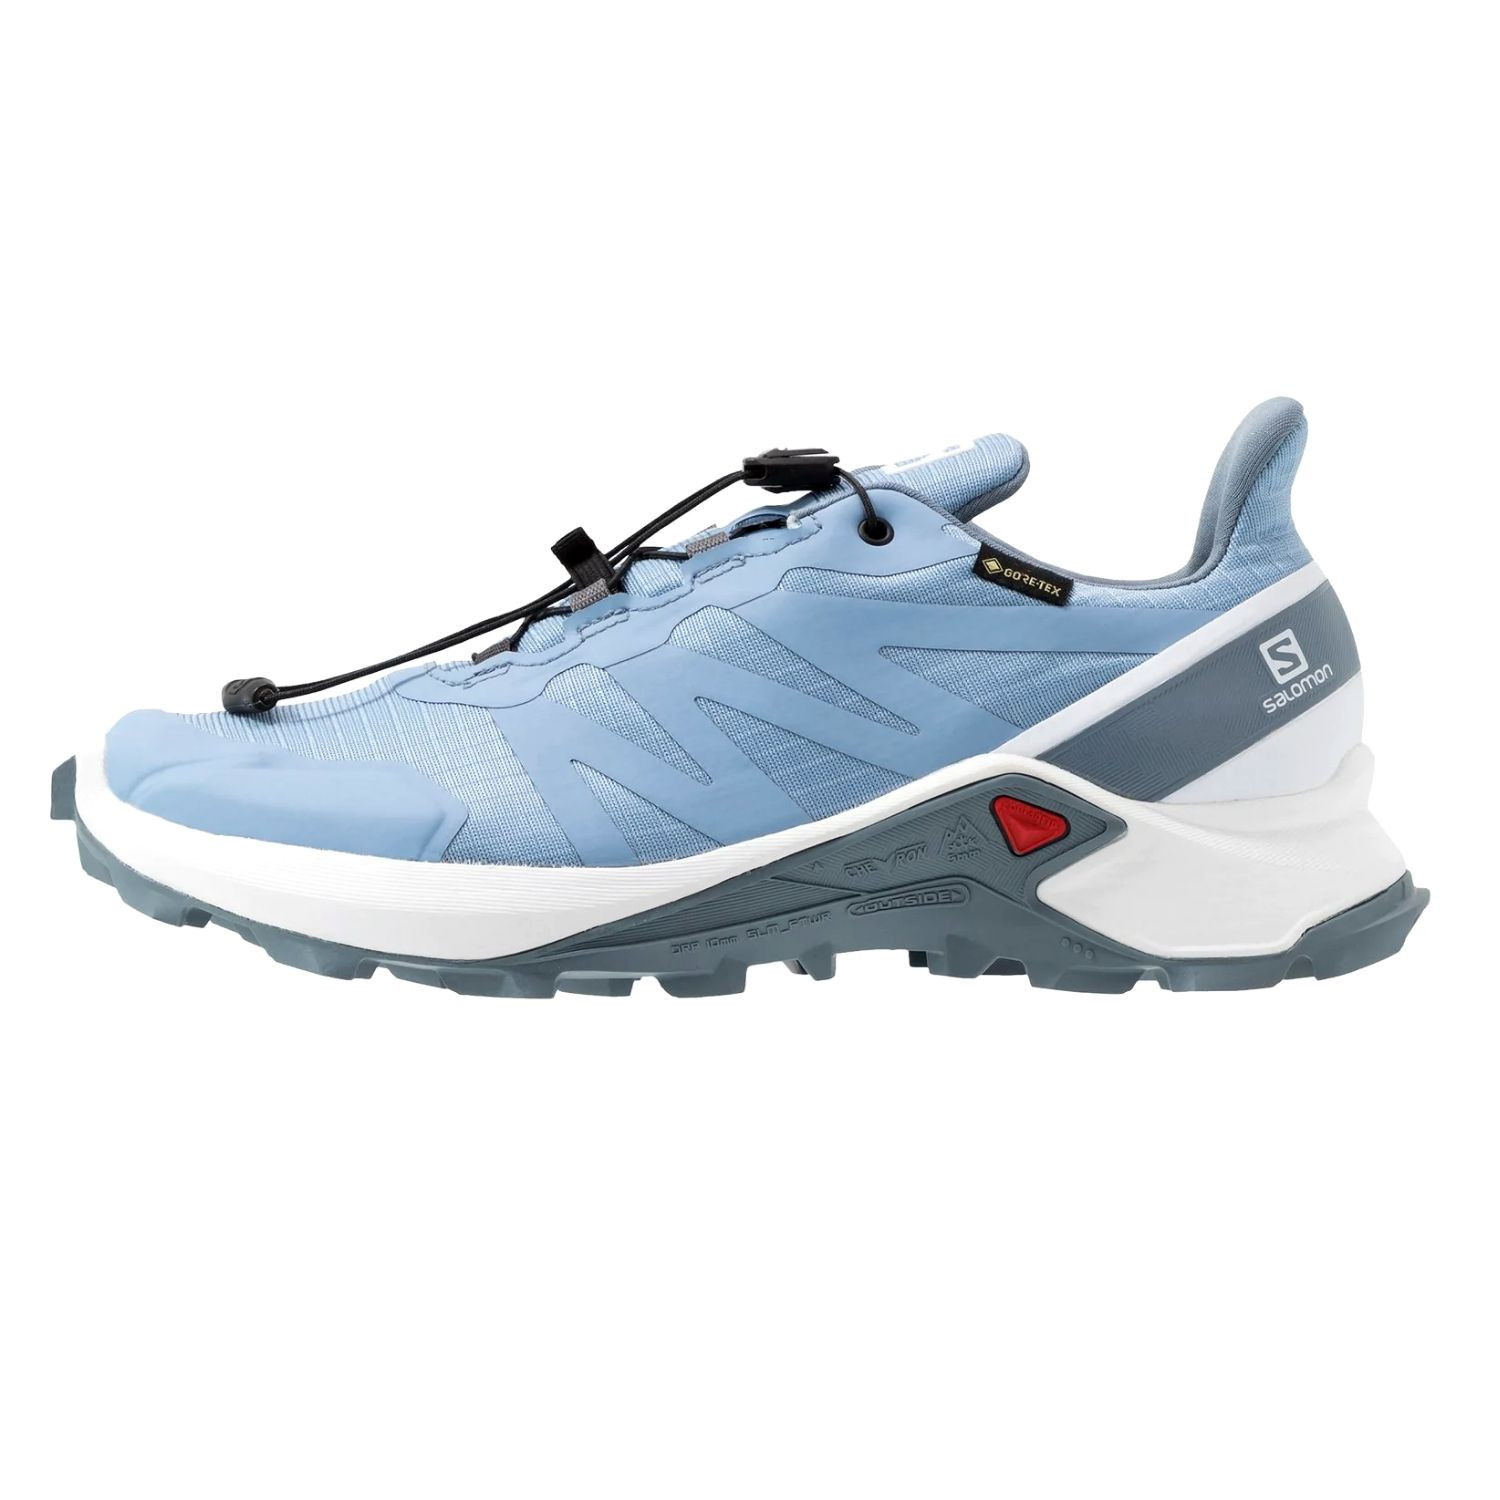 Dámska obuv SALOMON Speedcross GTX W Forever Blue / White / Flin Modrá uk 4